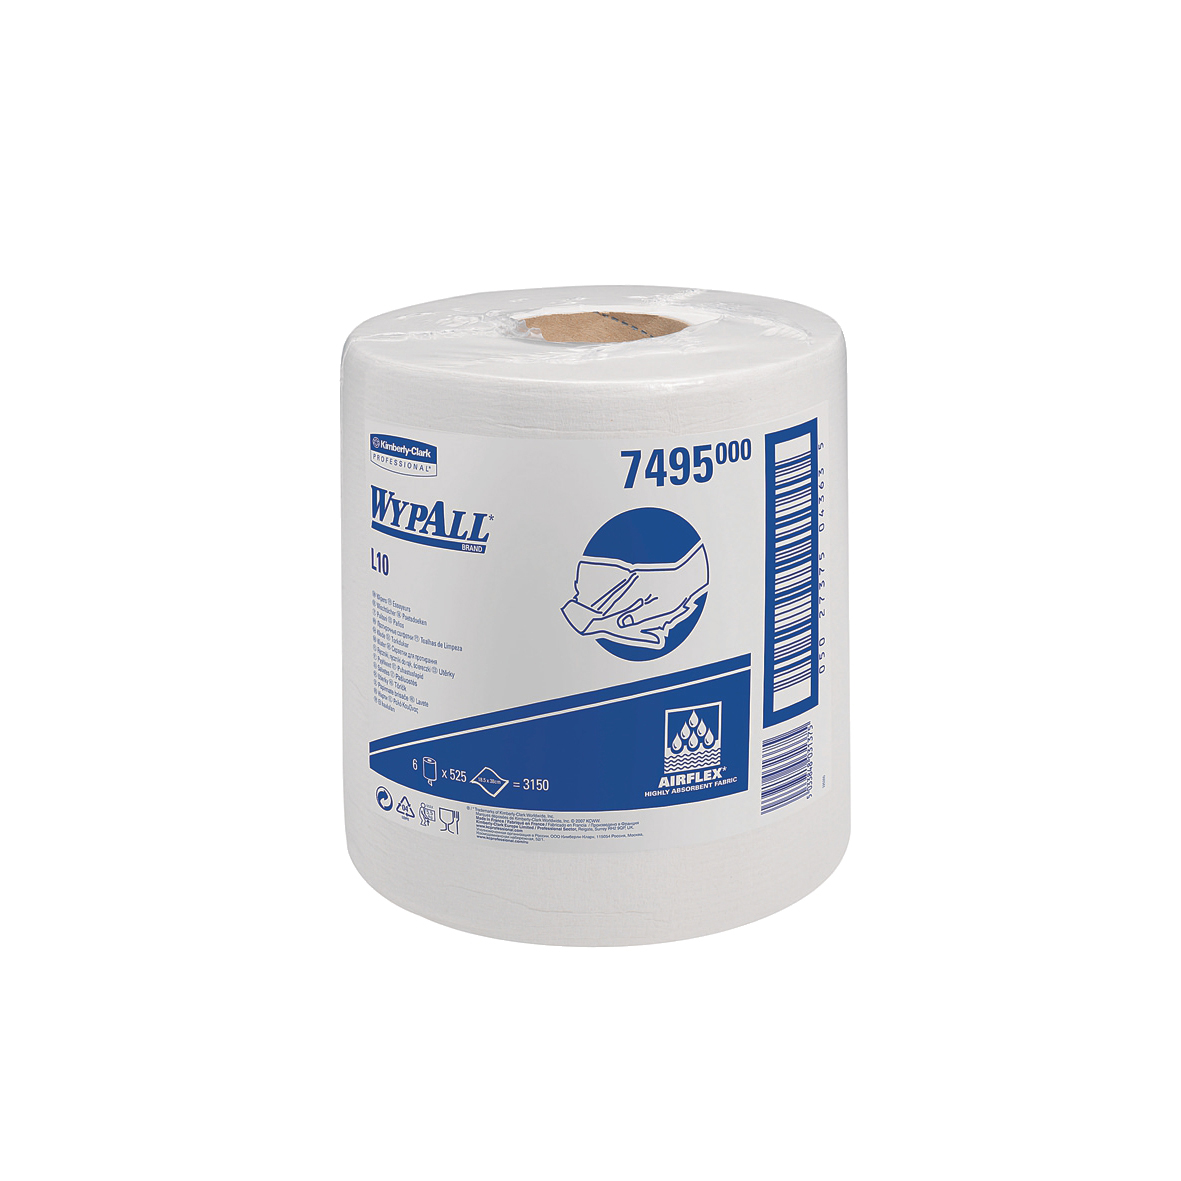 Wypall L10 Wipers Centrefeed Airflex 525 Sheets per Roll 185x380 White Ref 7495 Pack 6